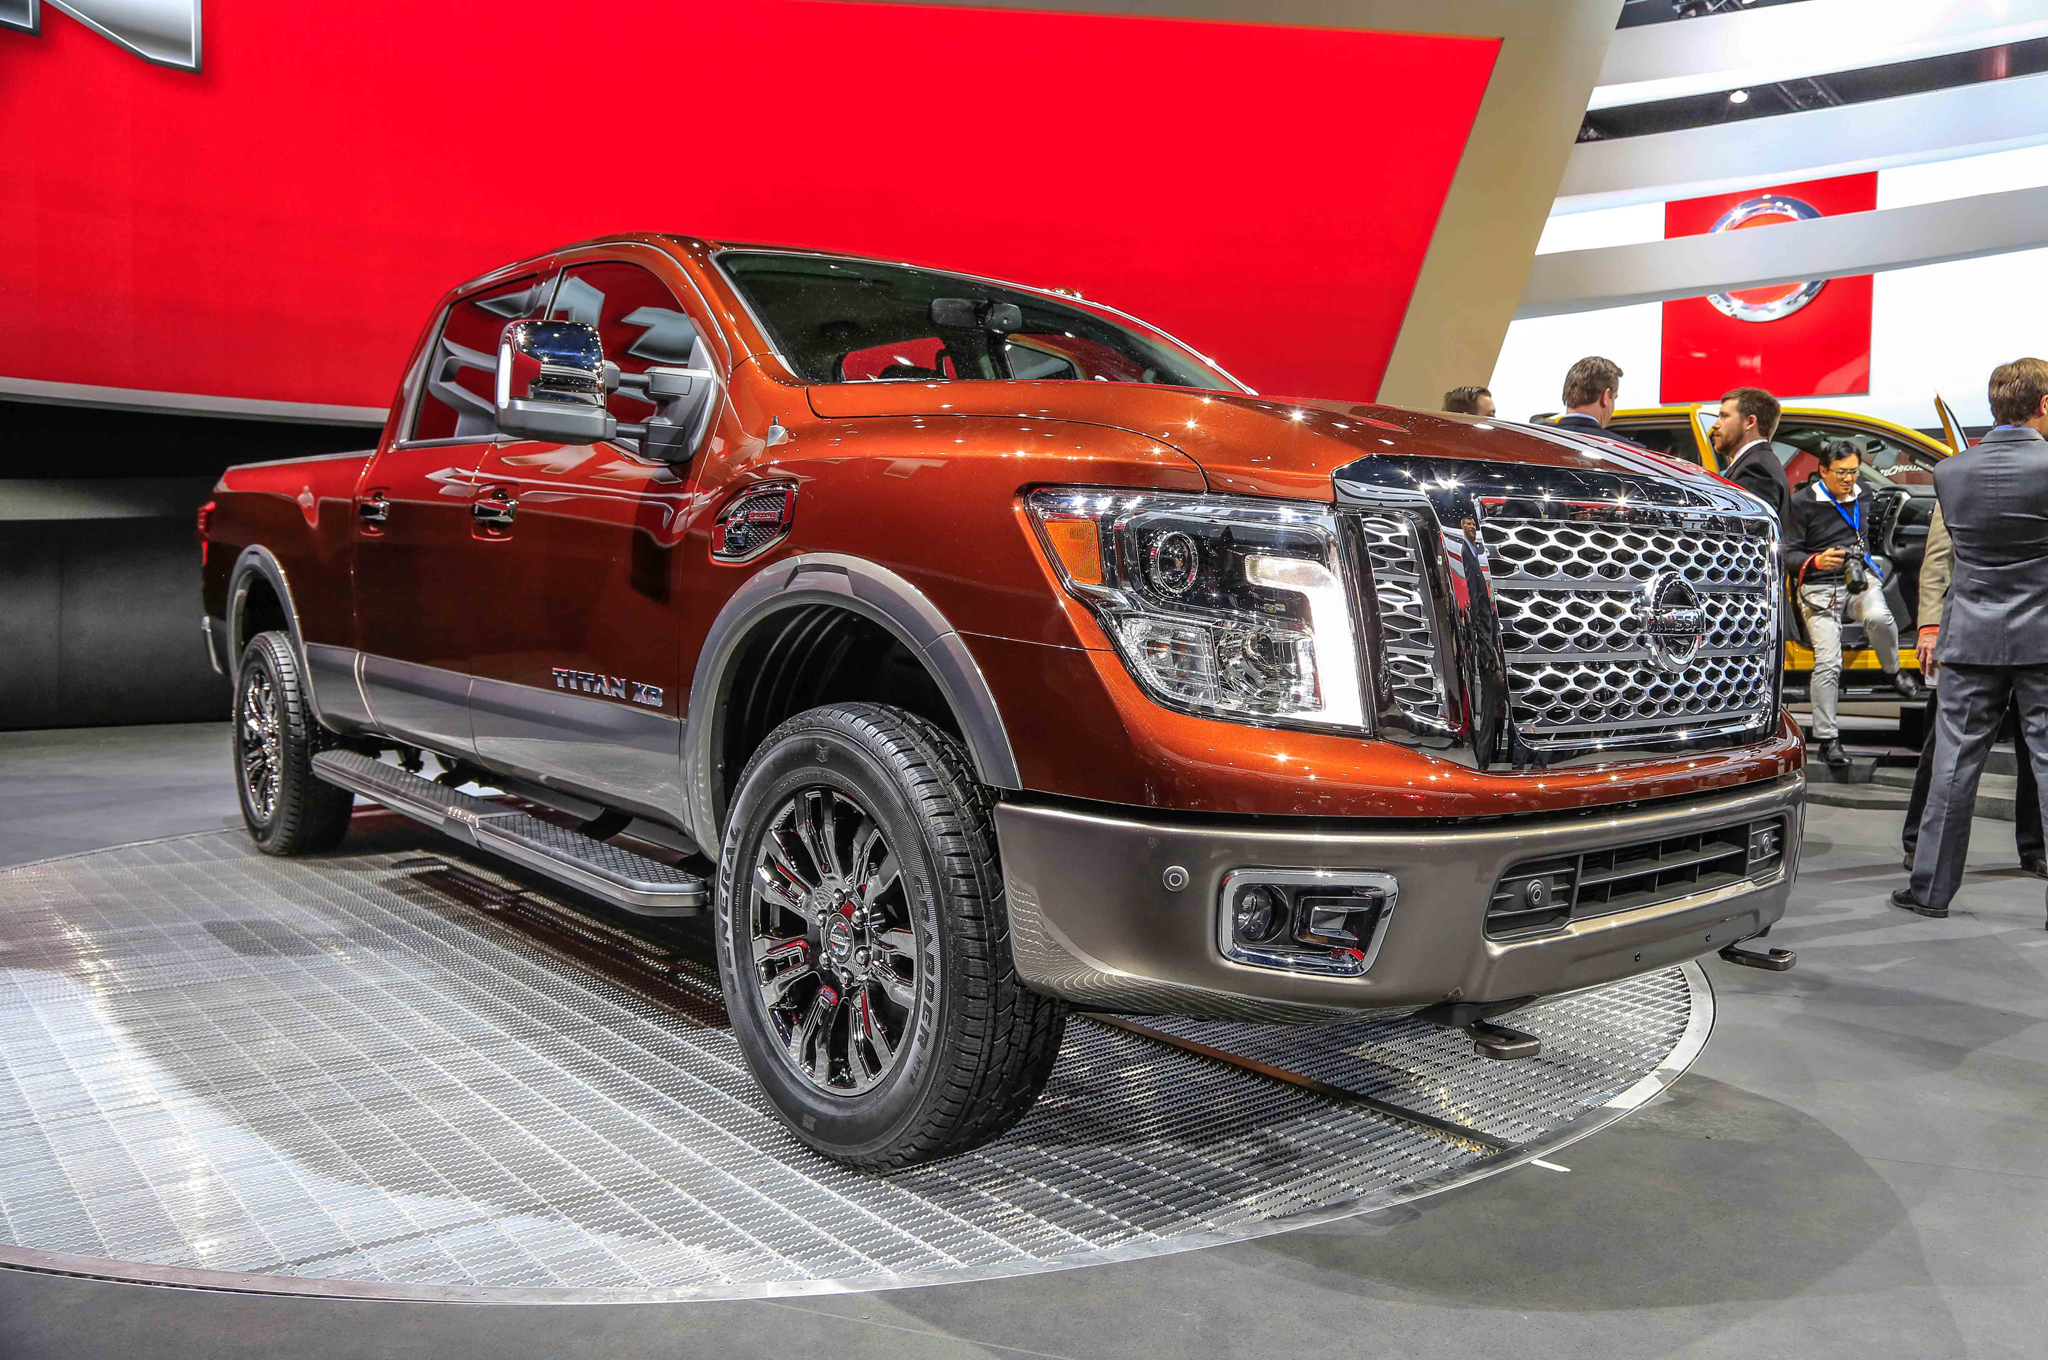 2016 Nissan Titan Exterior Preview (View 4 of 10)